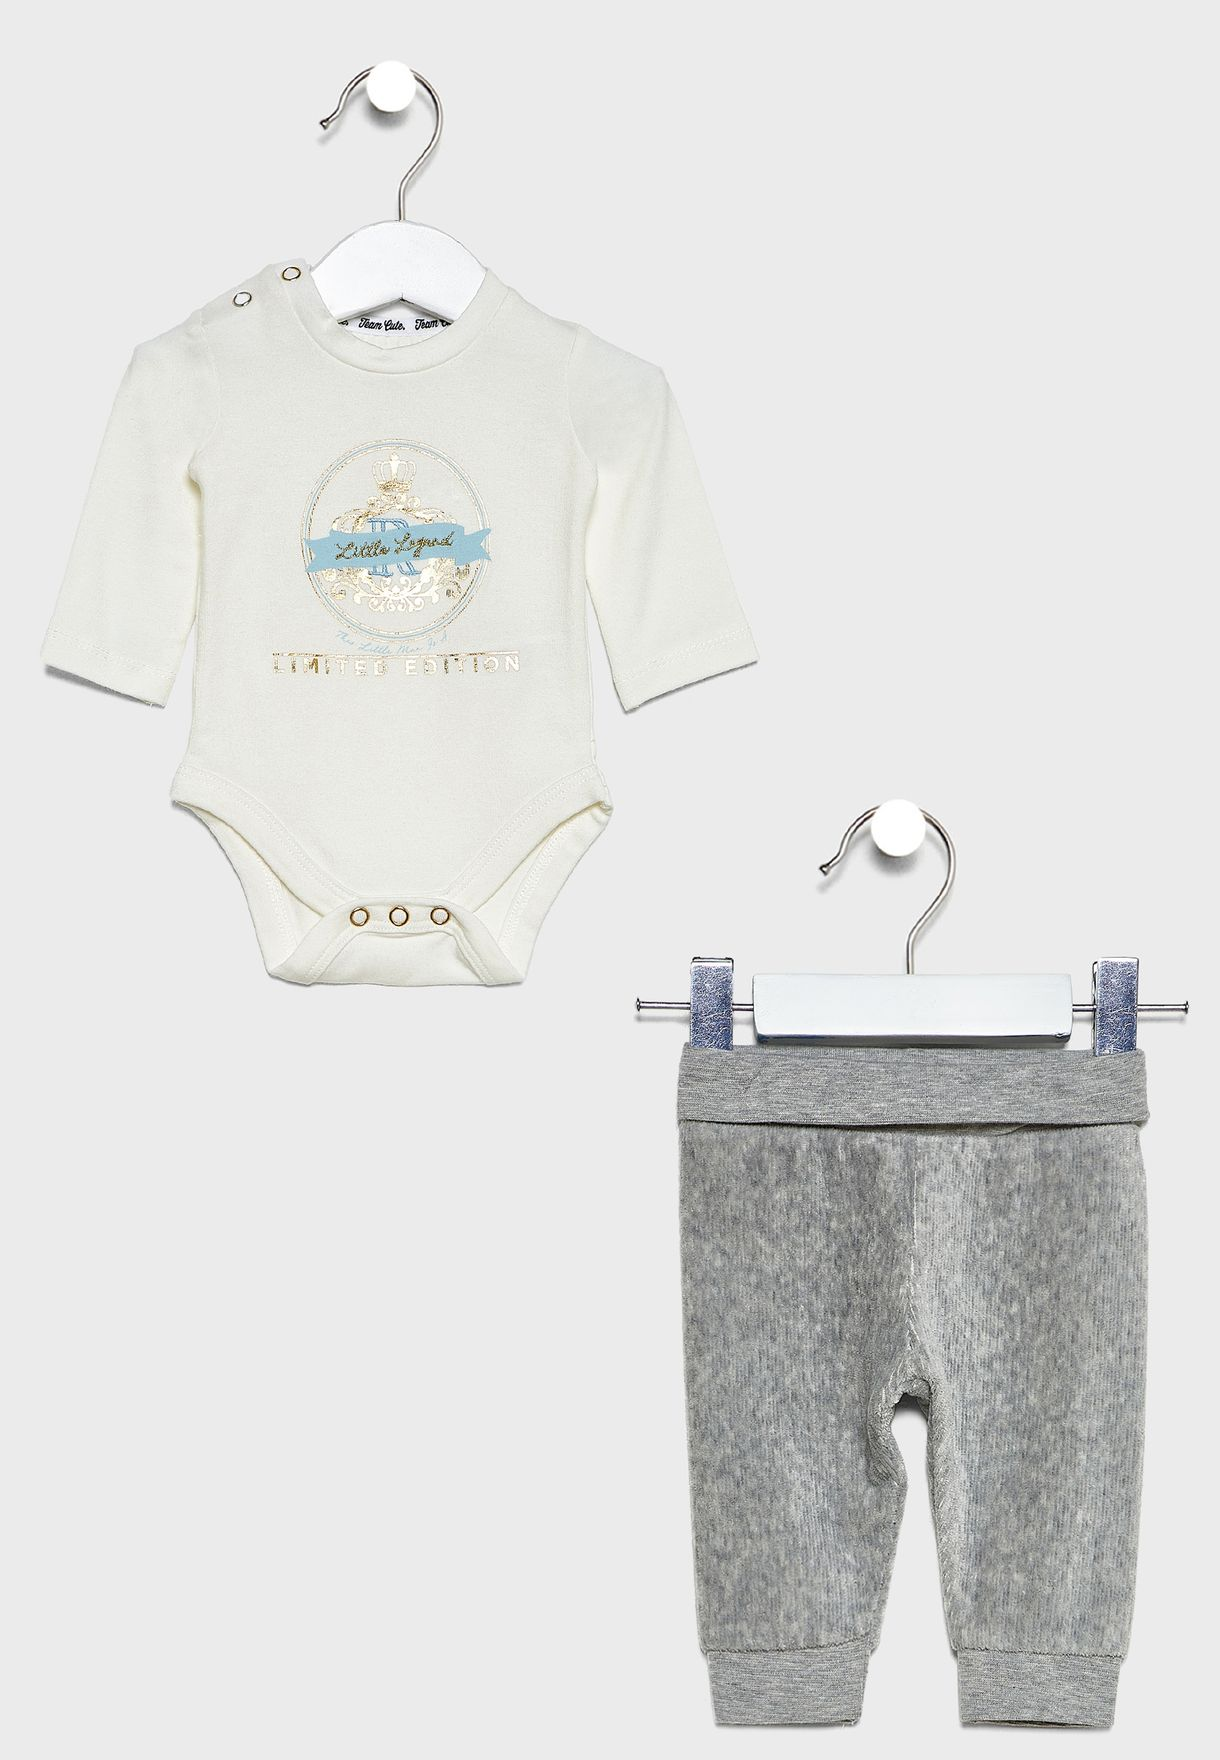 Infant Graphic Bodysuit + Sweatpants Set